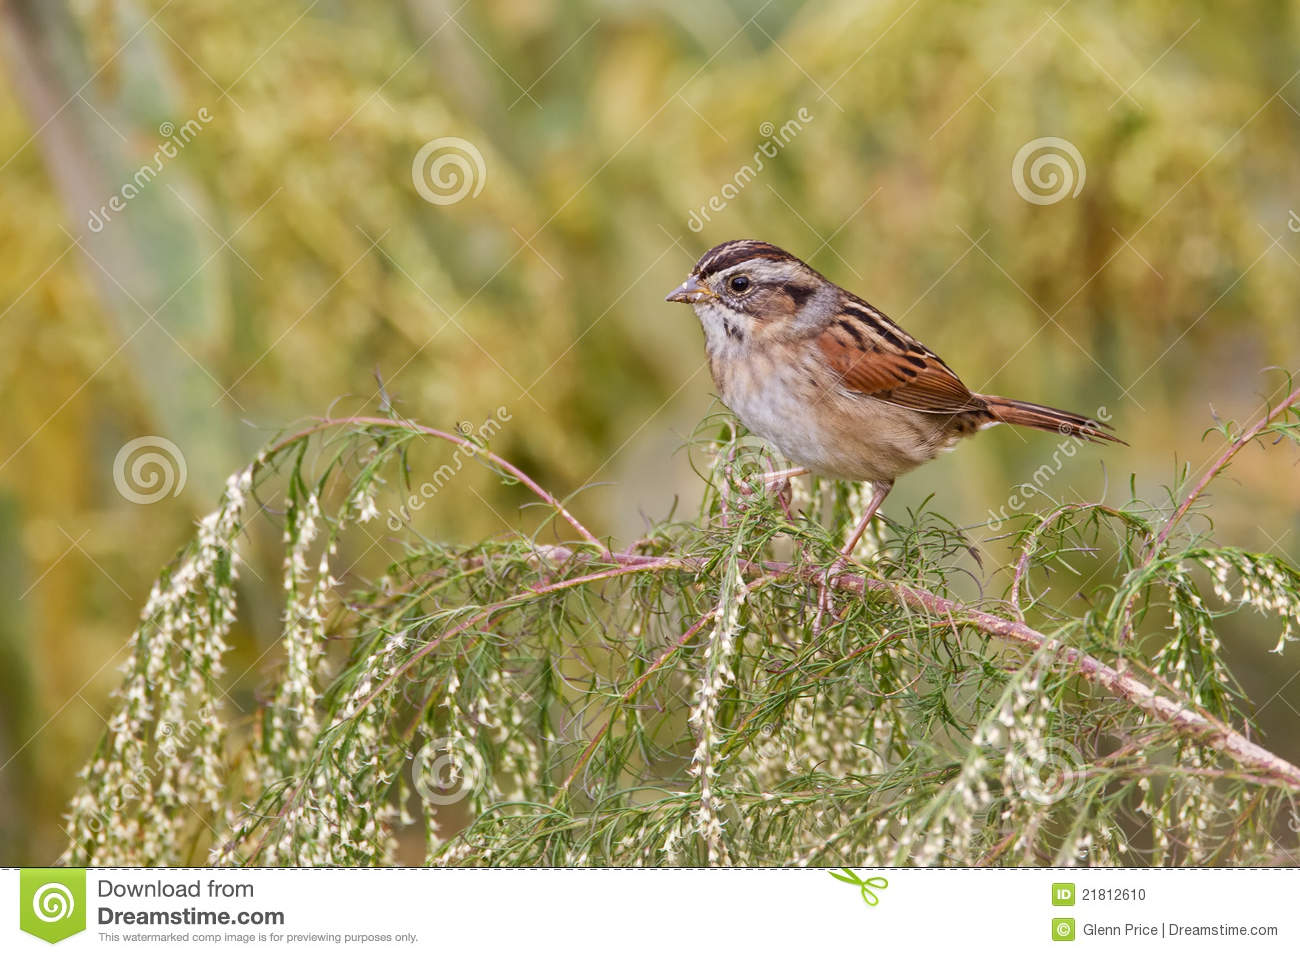 Swamp Sparrow clipart #13, Download drawings